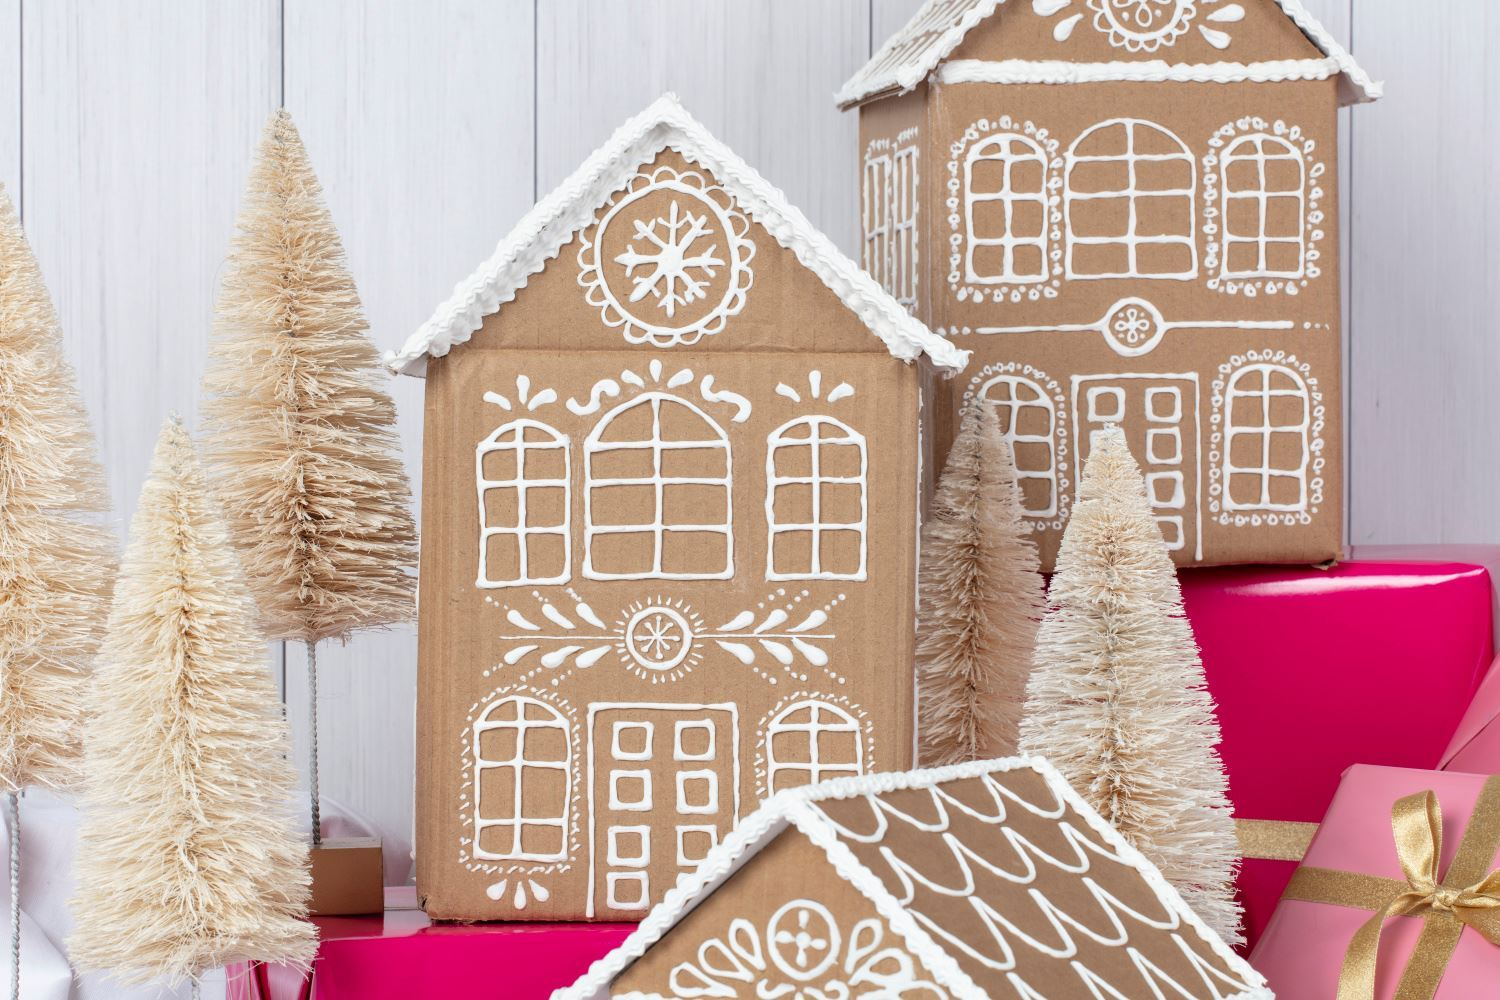 Easy No-Bake Cardboard Gingerbread Houses